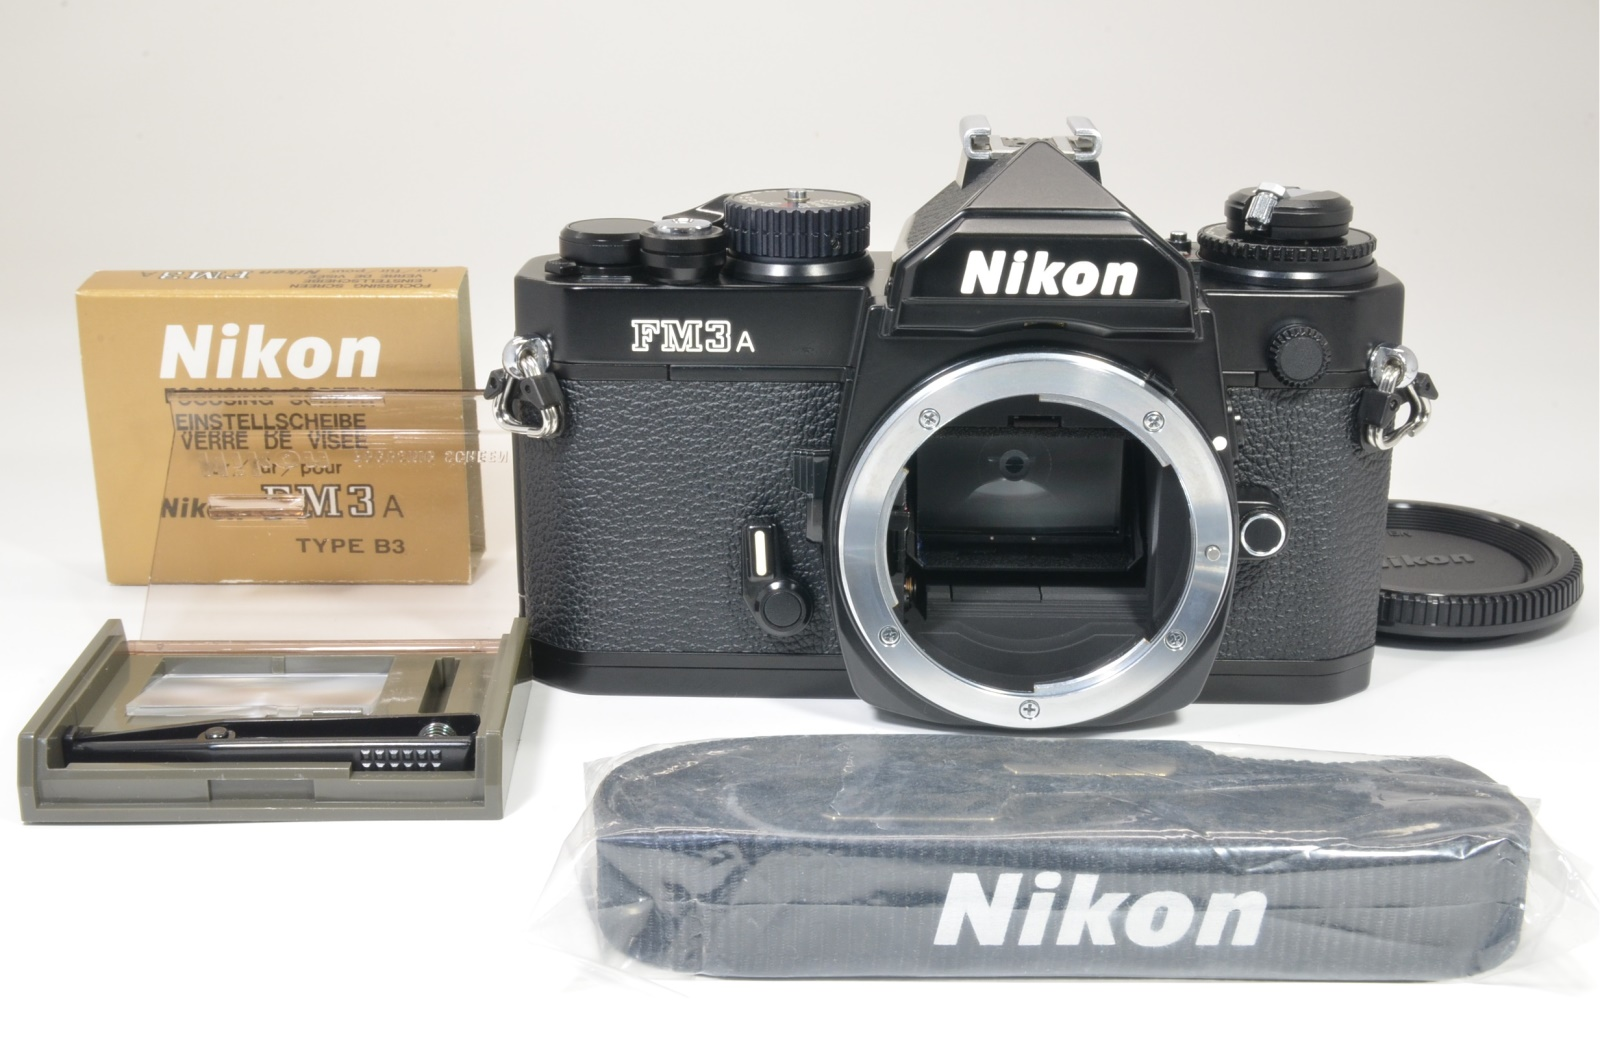 nikon fm3a 35mm film camera black with b3 focusing screen shooting tested